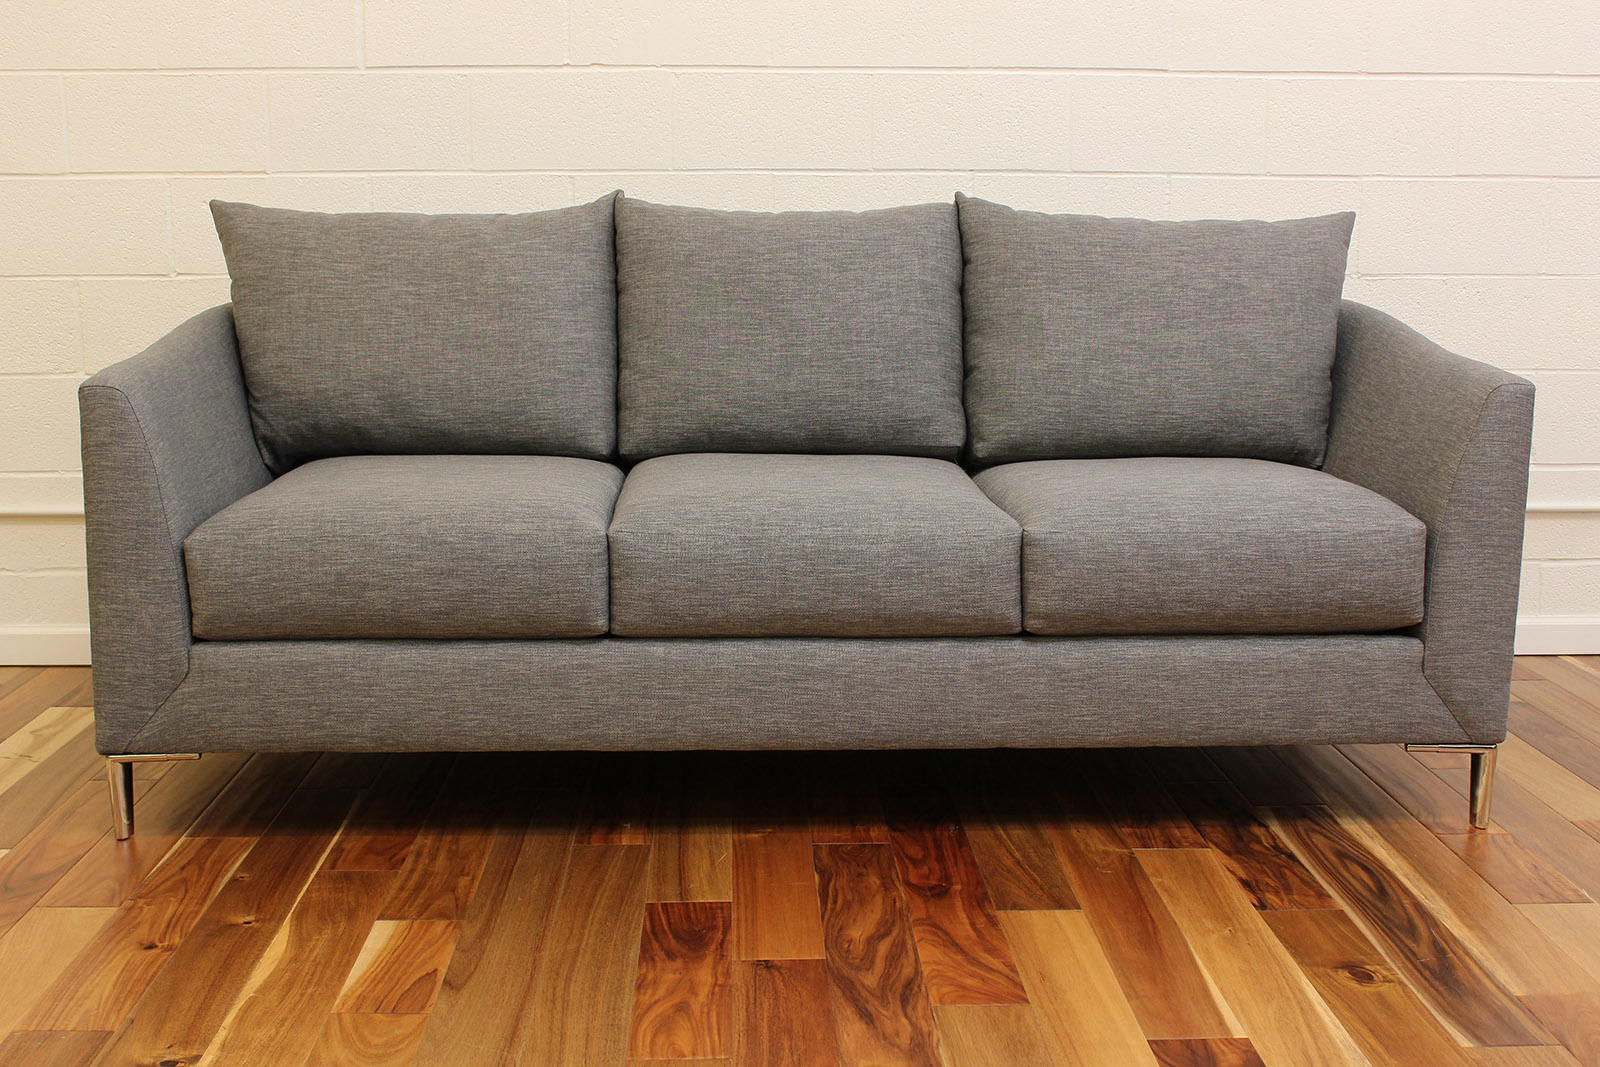 solid wood chairs inexpensive folding habitat - cozy couch sf